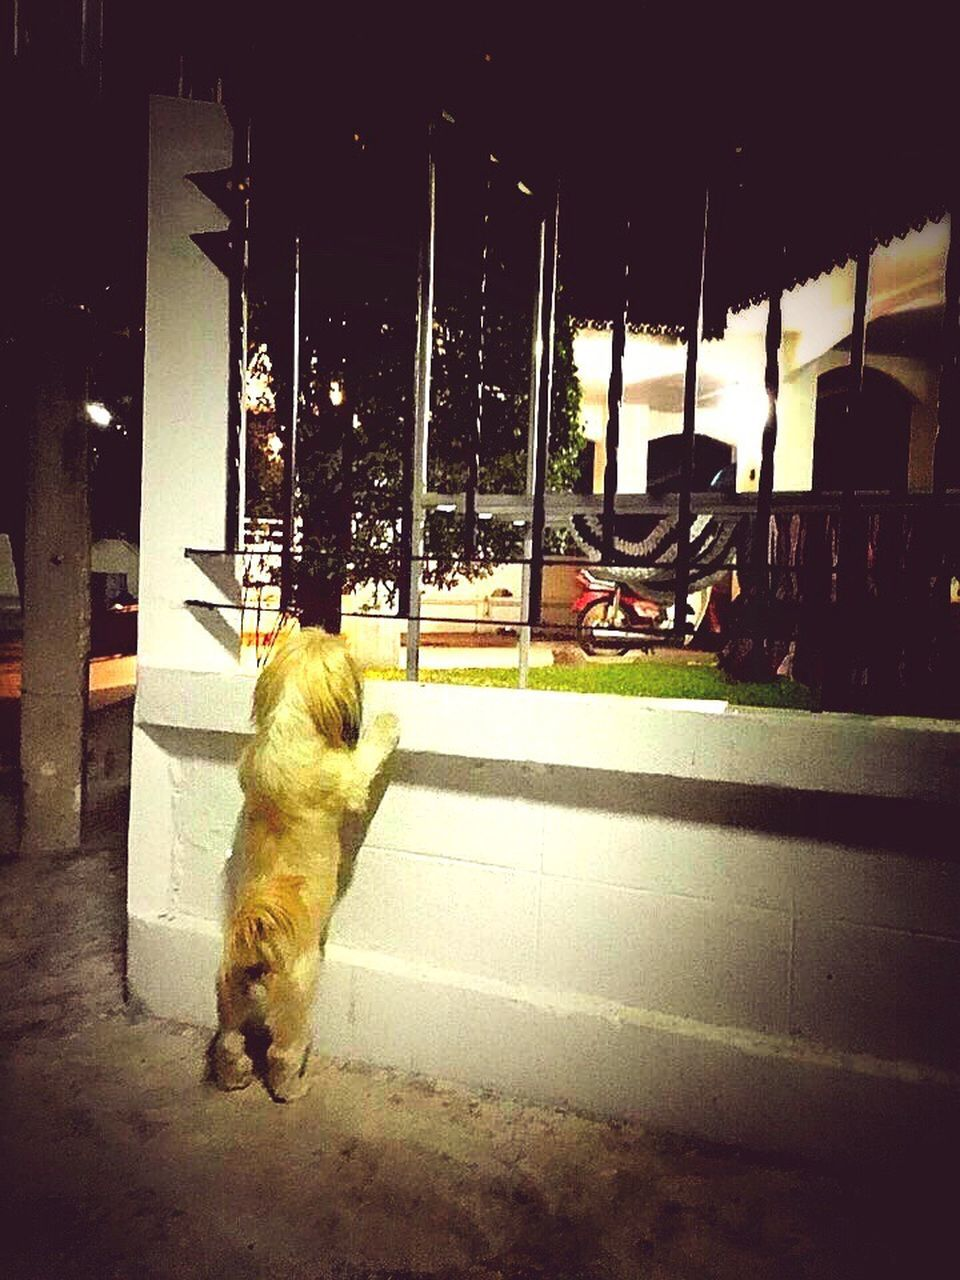 DOG ON ROAD BY NIGHT